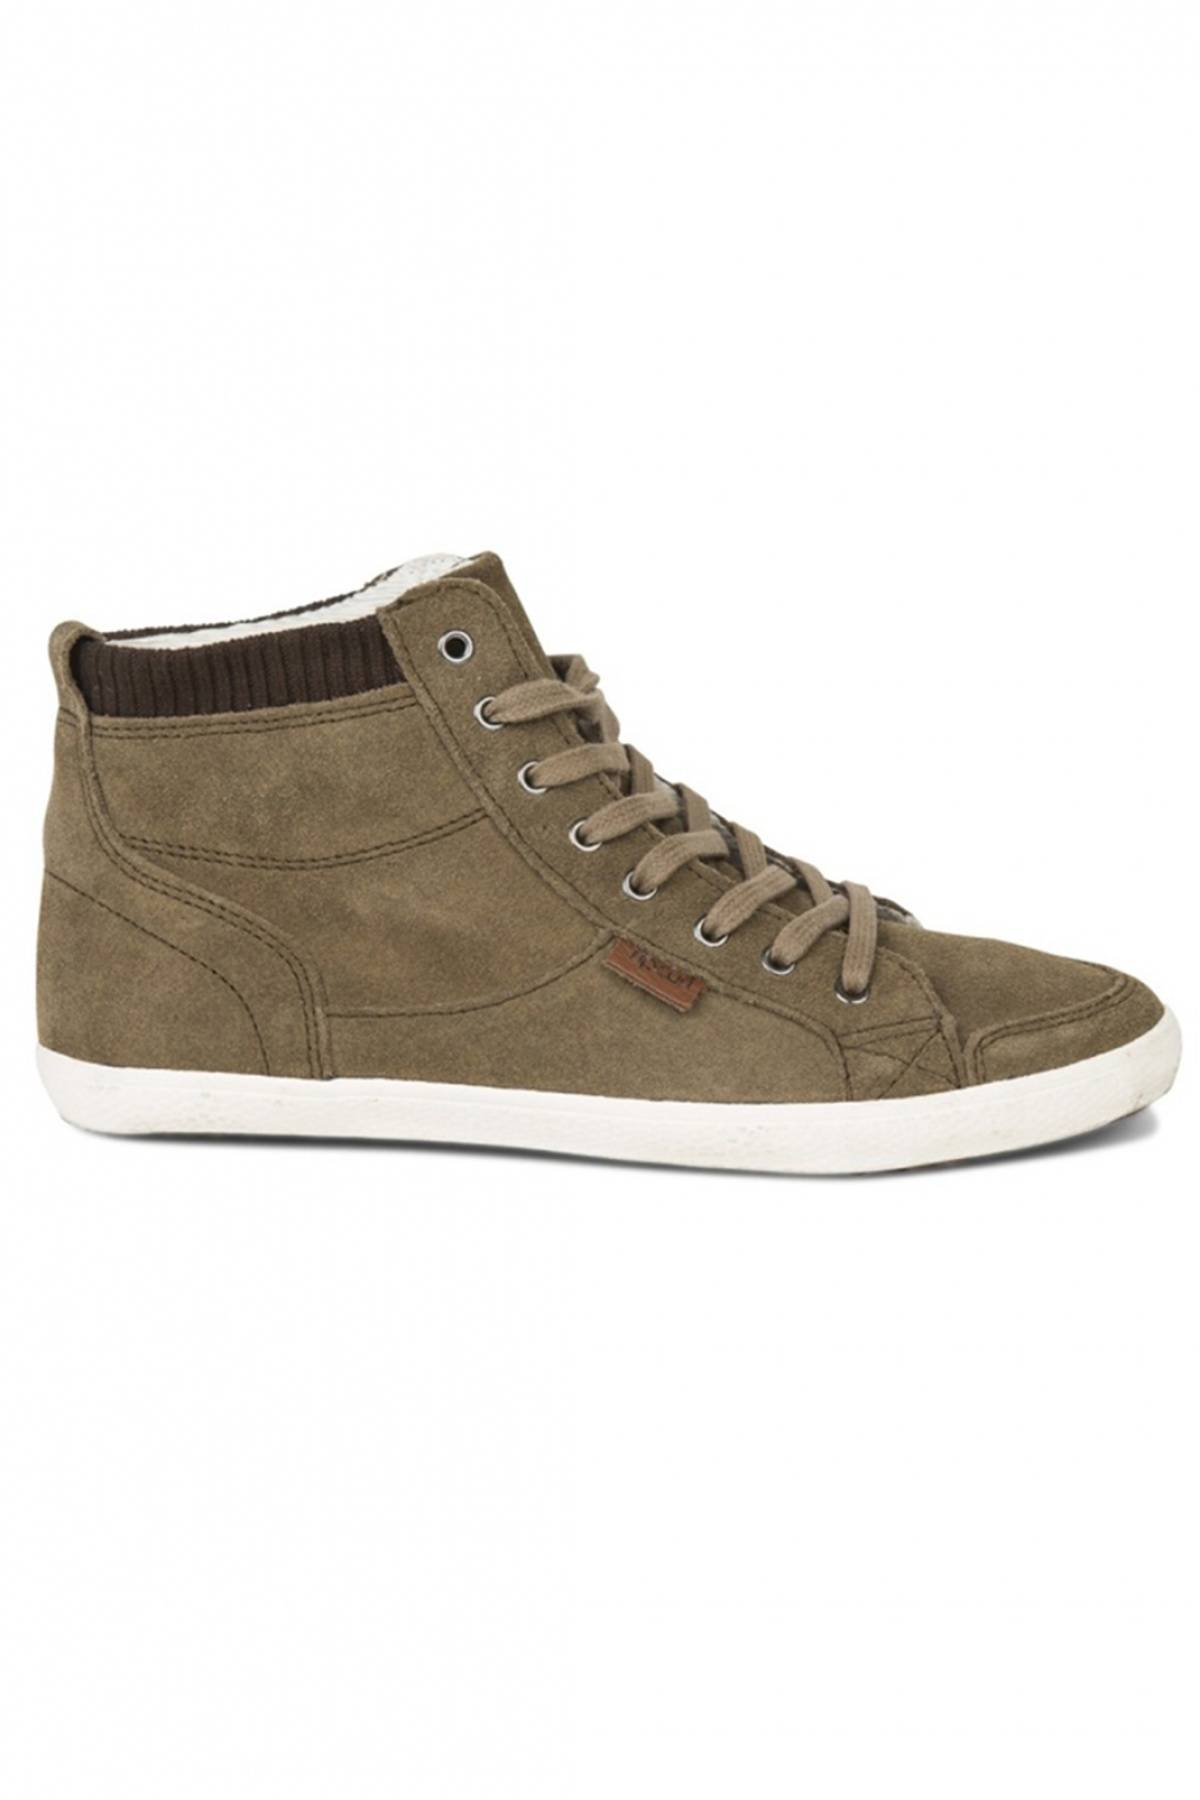 RIP CURL Chaussures RIP CURL FEMME 35 BETSY HIGH TGLAL1 5067